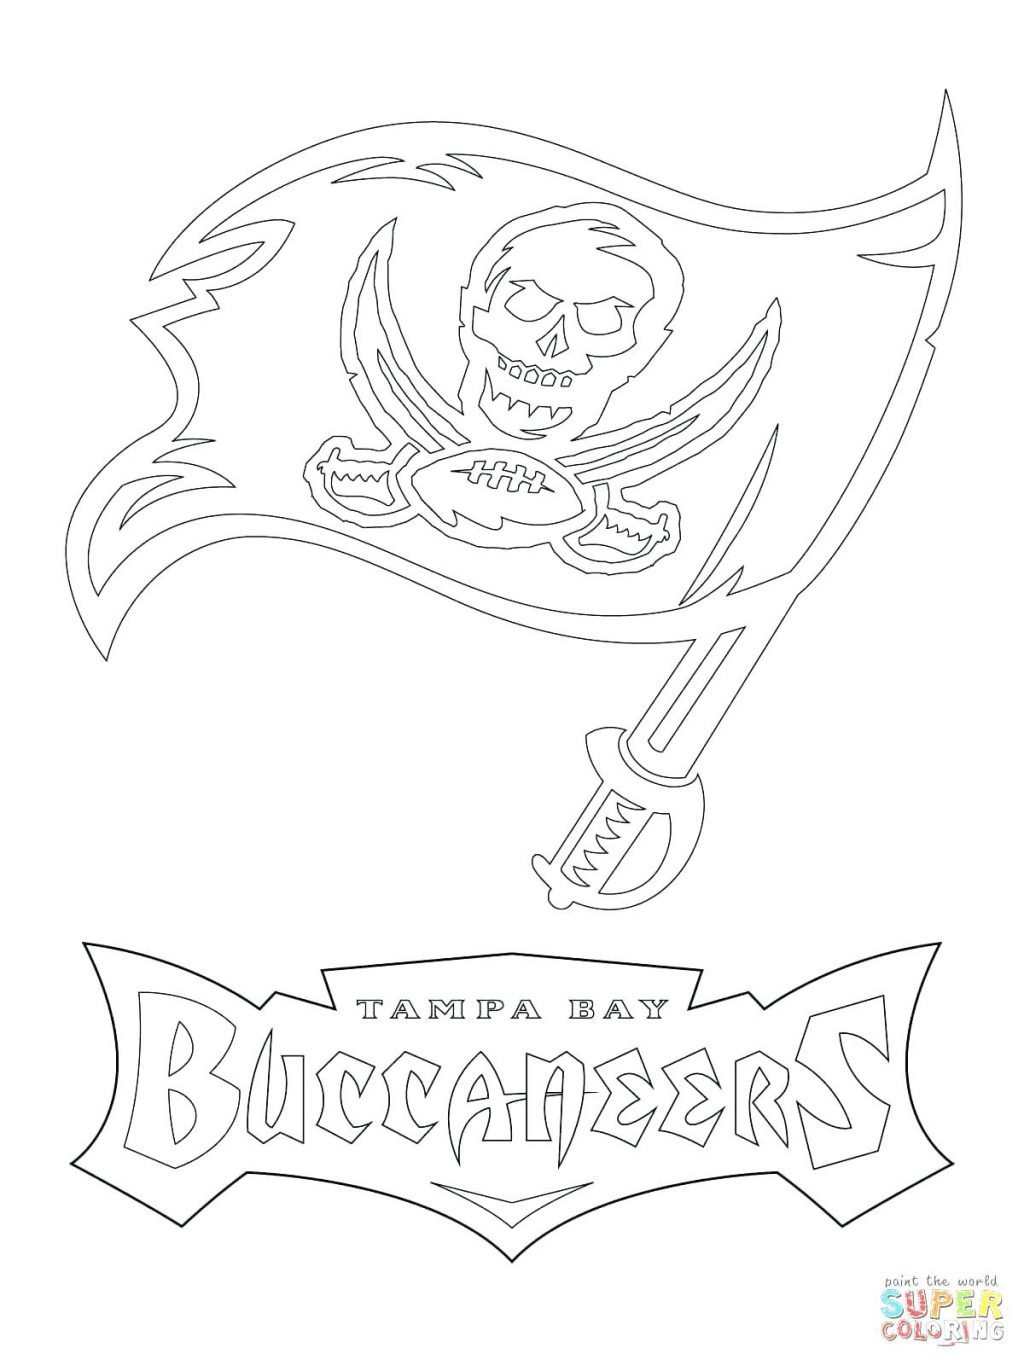 49ers Drawing at GetDrawings.com   Free for personal use 49ers ...